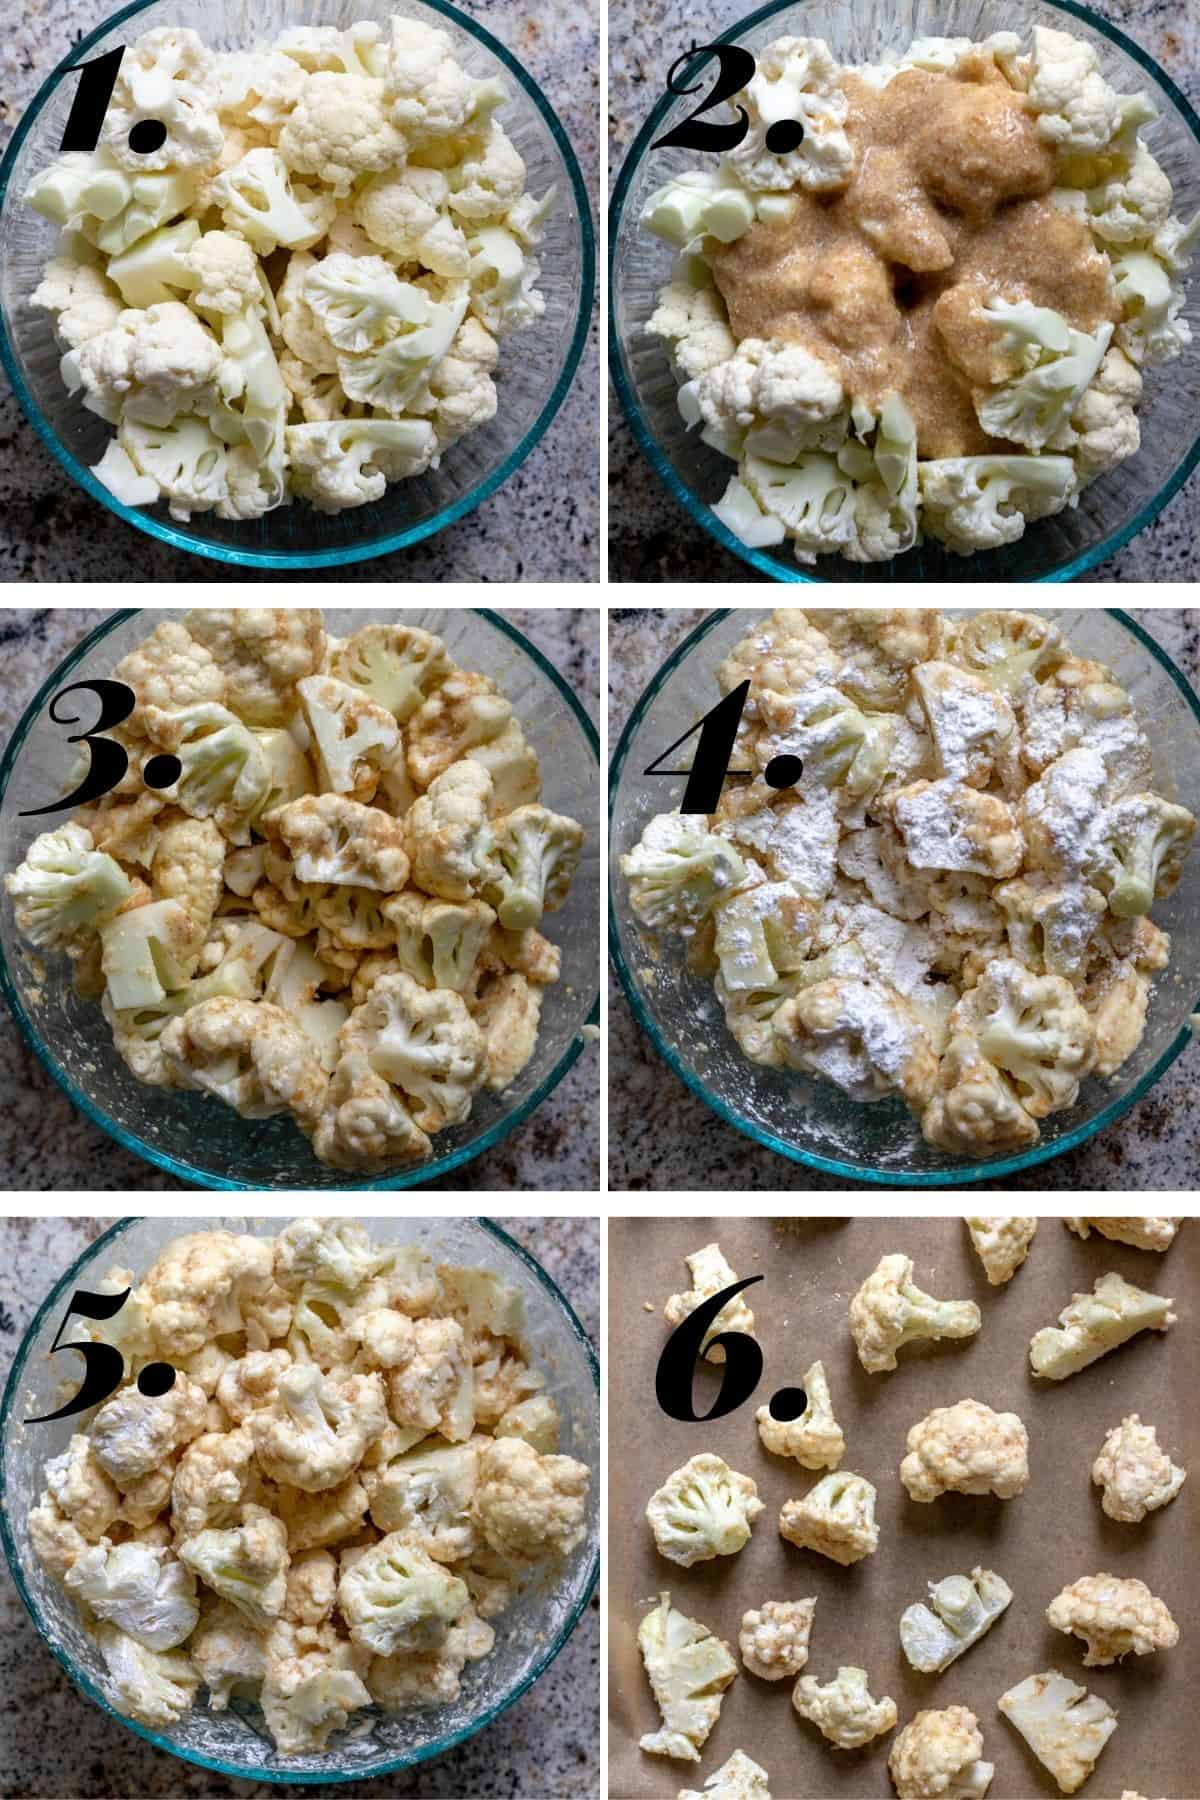 Step by step process showing how to prepare the cauliflower florets.